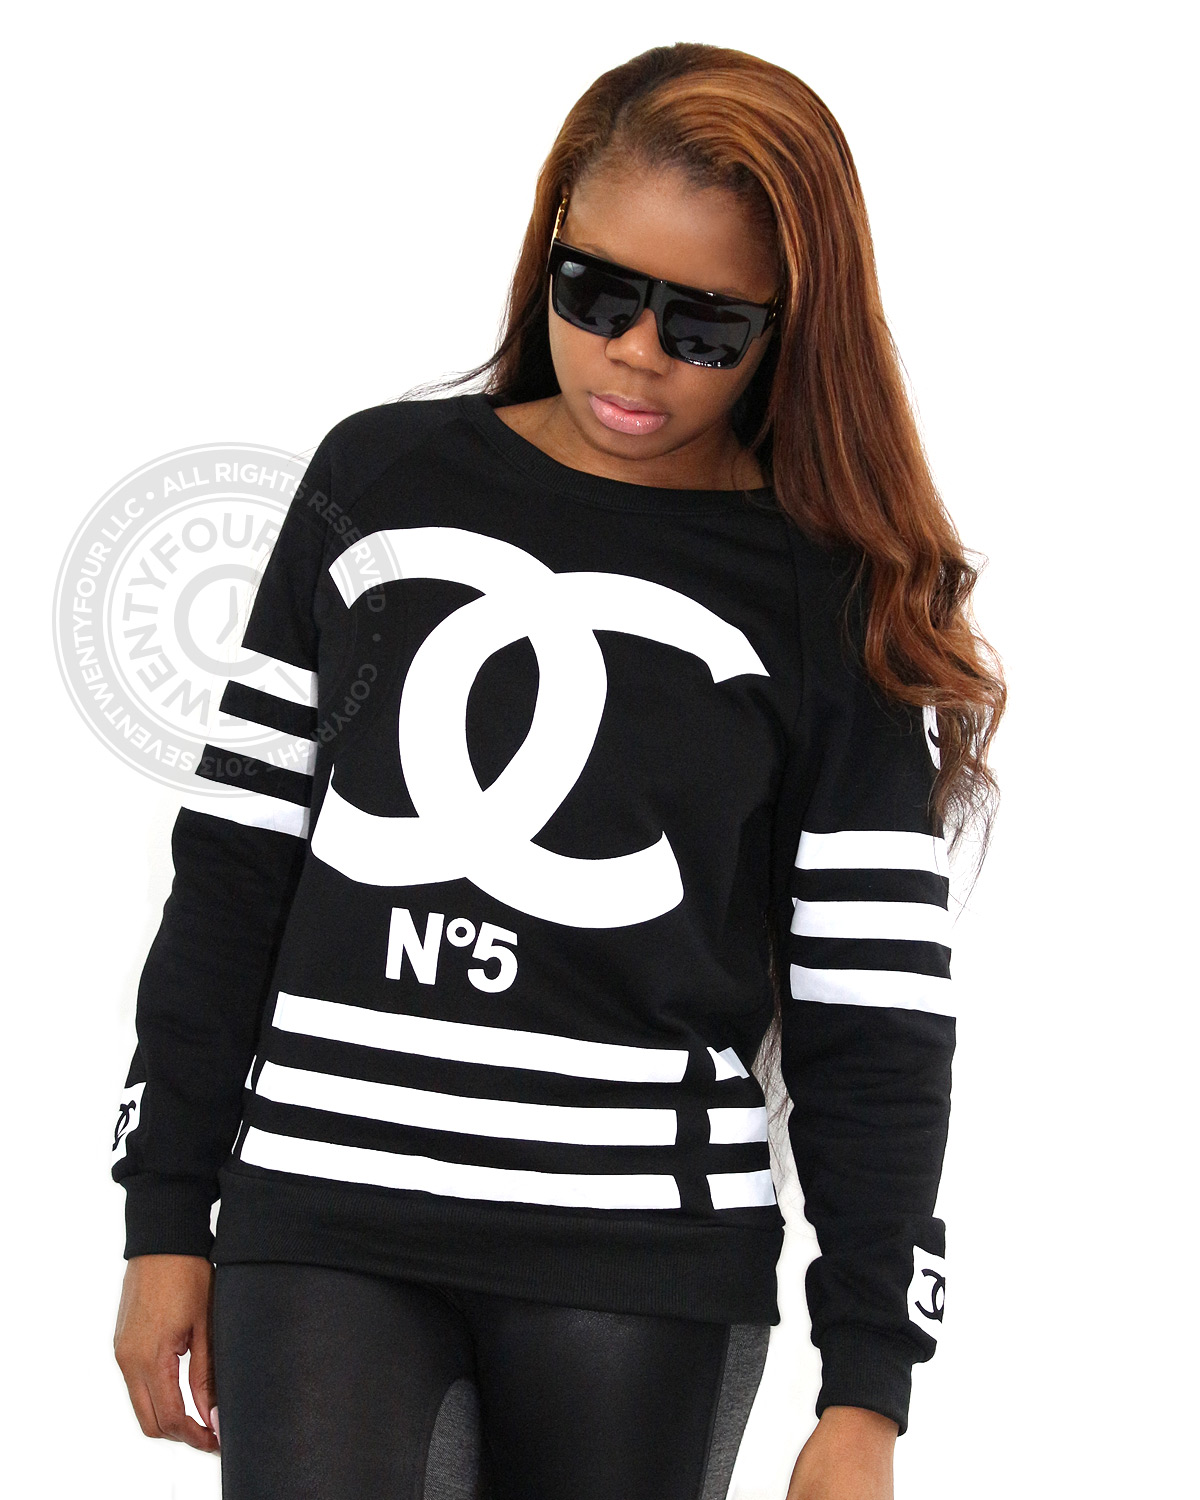 Chanel Inspired No 5 Coco Sweatshirt Women S Urban